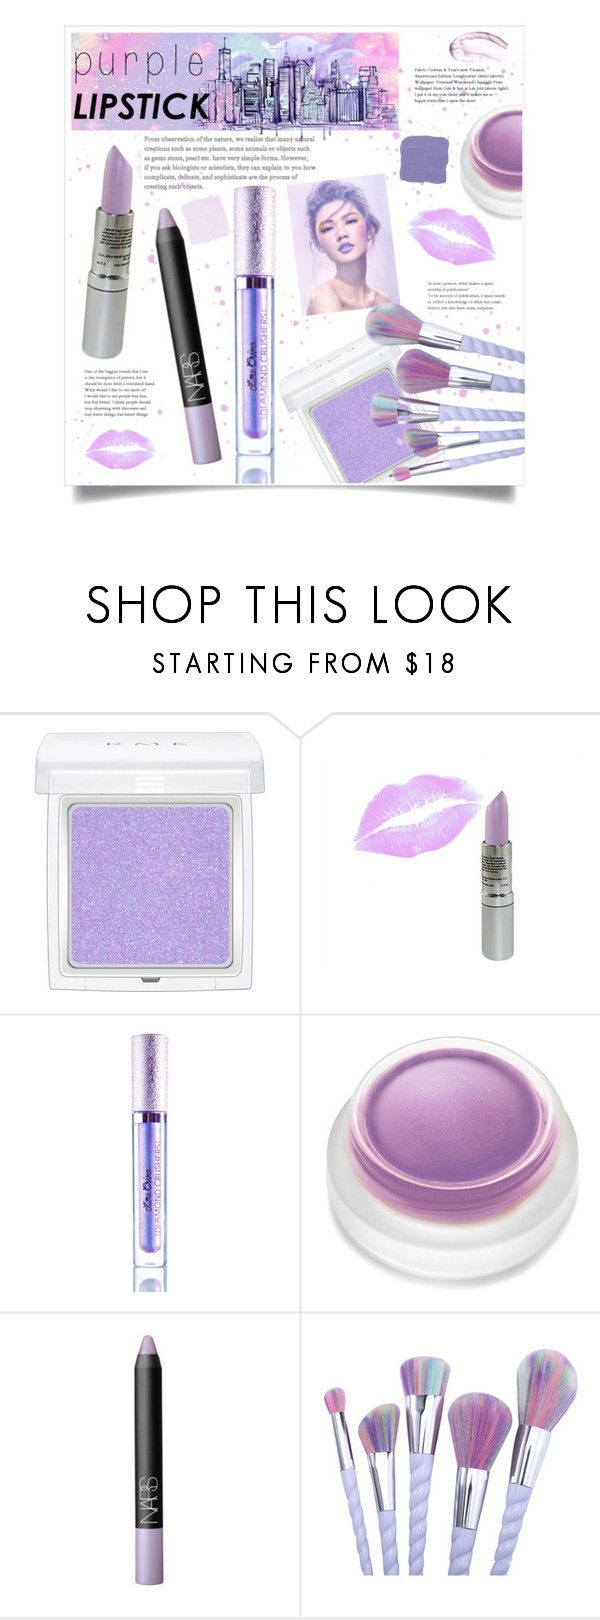 """""""Twilight"""" by mmk2k ❤ liked on Polyvore featuring beauty, RMK, Obsessive Compulsive Cosmetics, rms beauty, NARS Cosmetics, Chantecaille, purple, LIPSTICK and purplelipstick"""